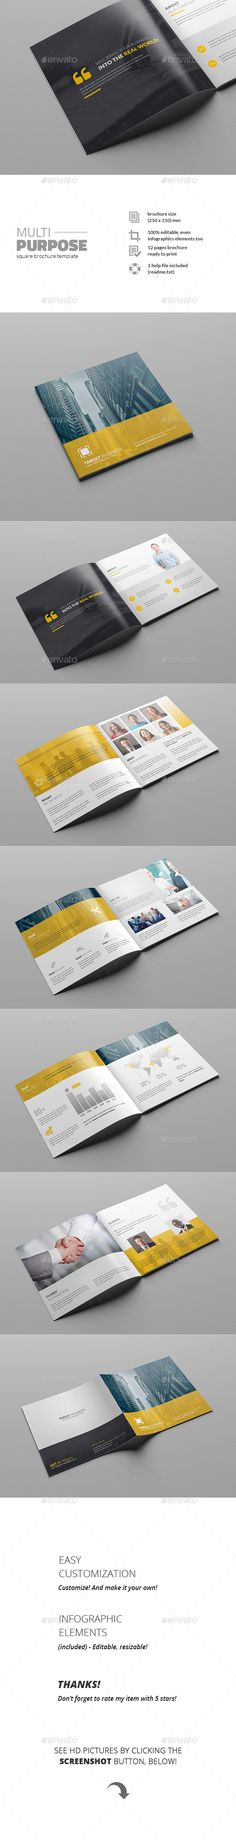 Multipurpose Square Brochure — Photoshop PSD #print #booklet • Available here → https://graphicriver.net/item/multipurpose-square-brochure/11641822?ref=pxcr